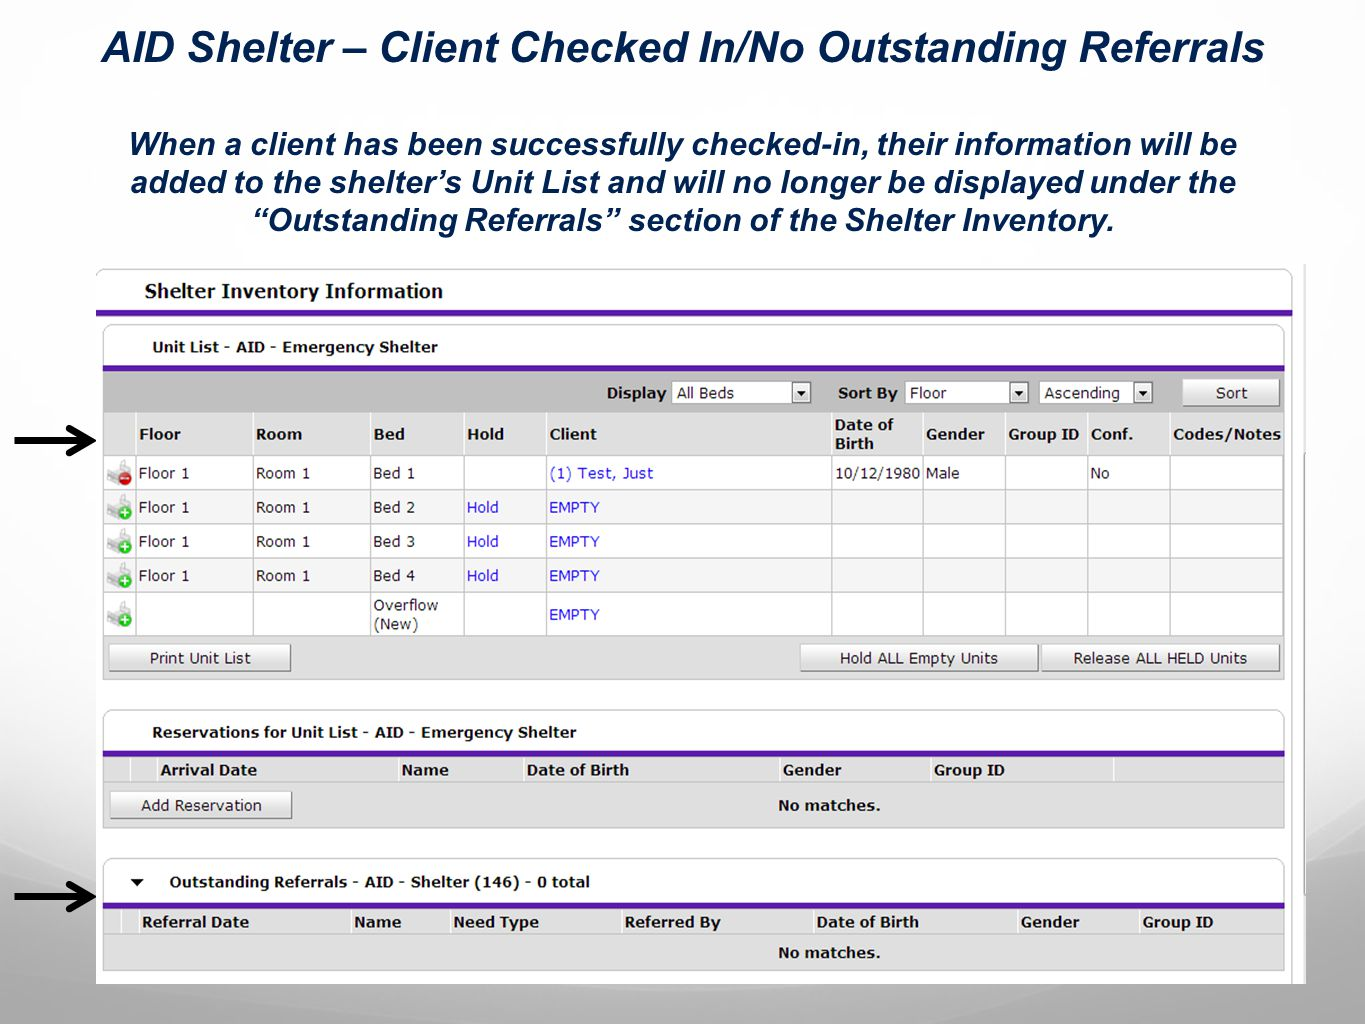 AID Shelter – Client Checked In/No Outstanding Referrals When a client has been successfully checked-in, their information will be added to the shelter's Unit List and will no longer be displayed under the Outstanding Referrals section of the Shelter Inventory.